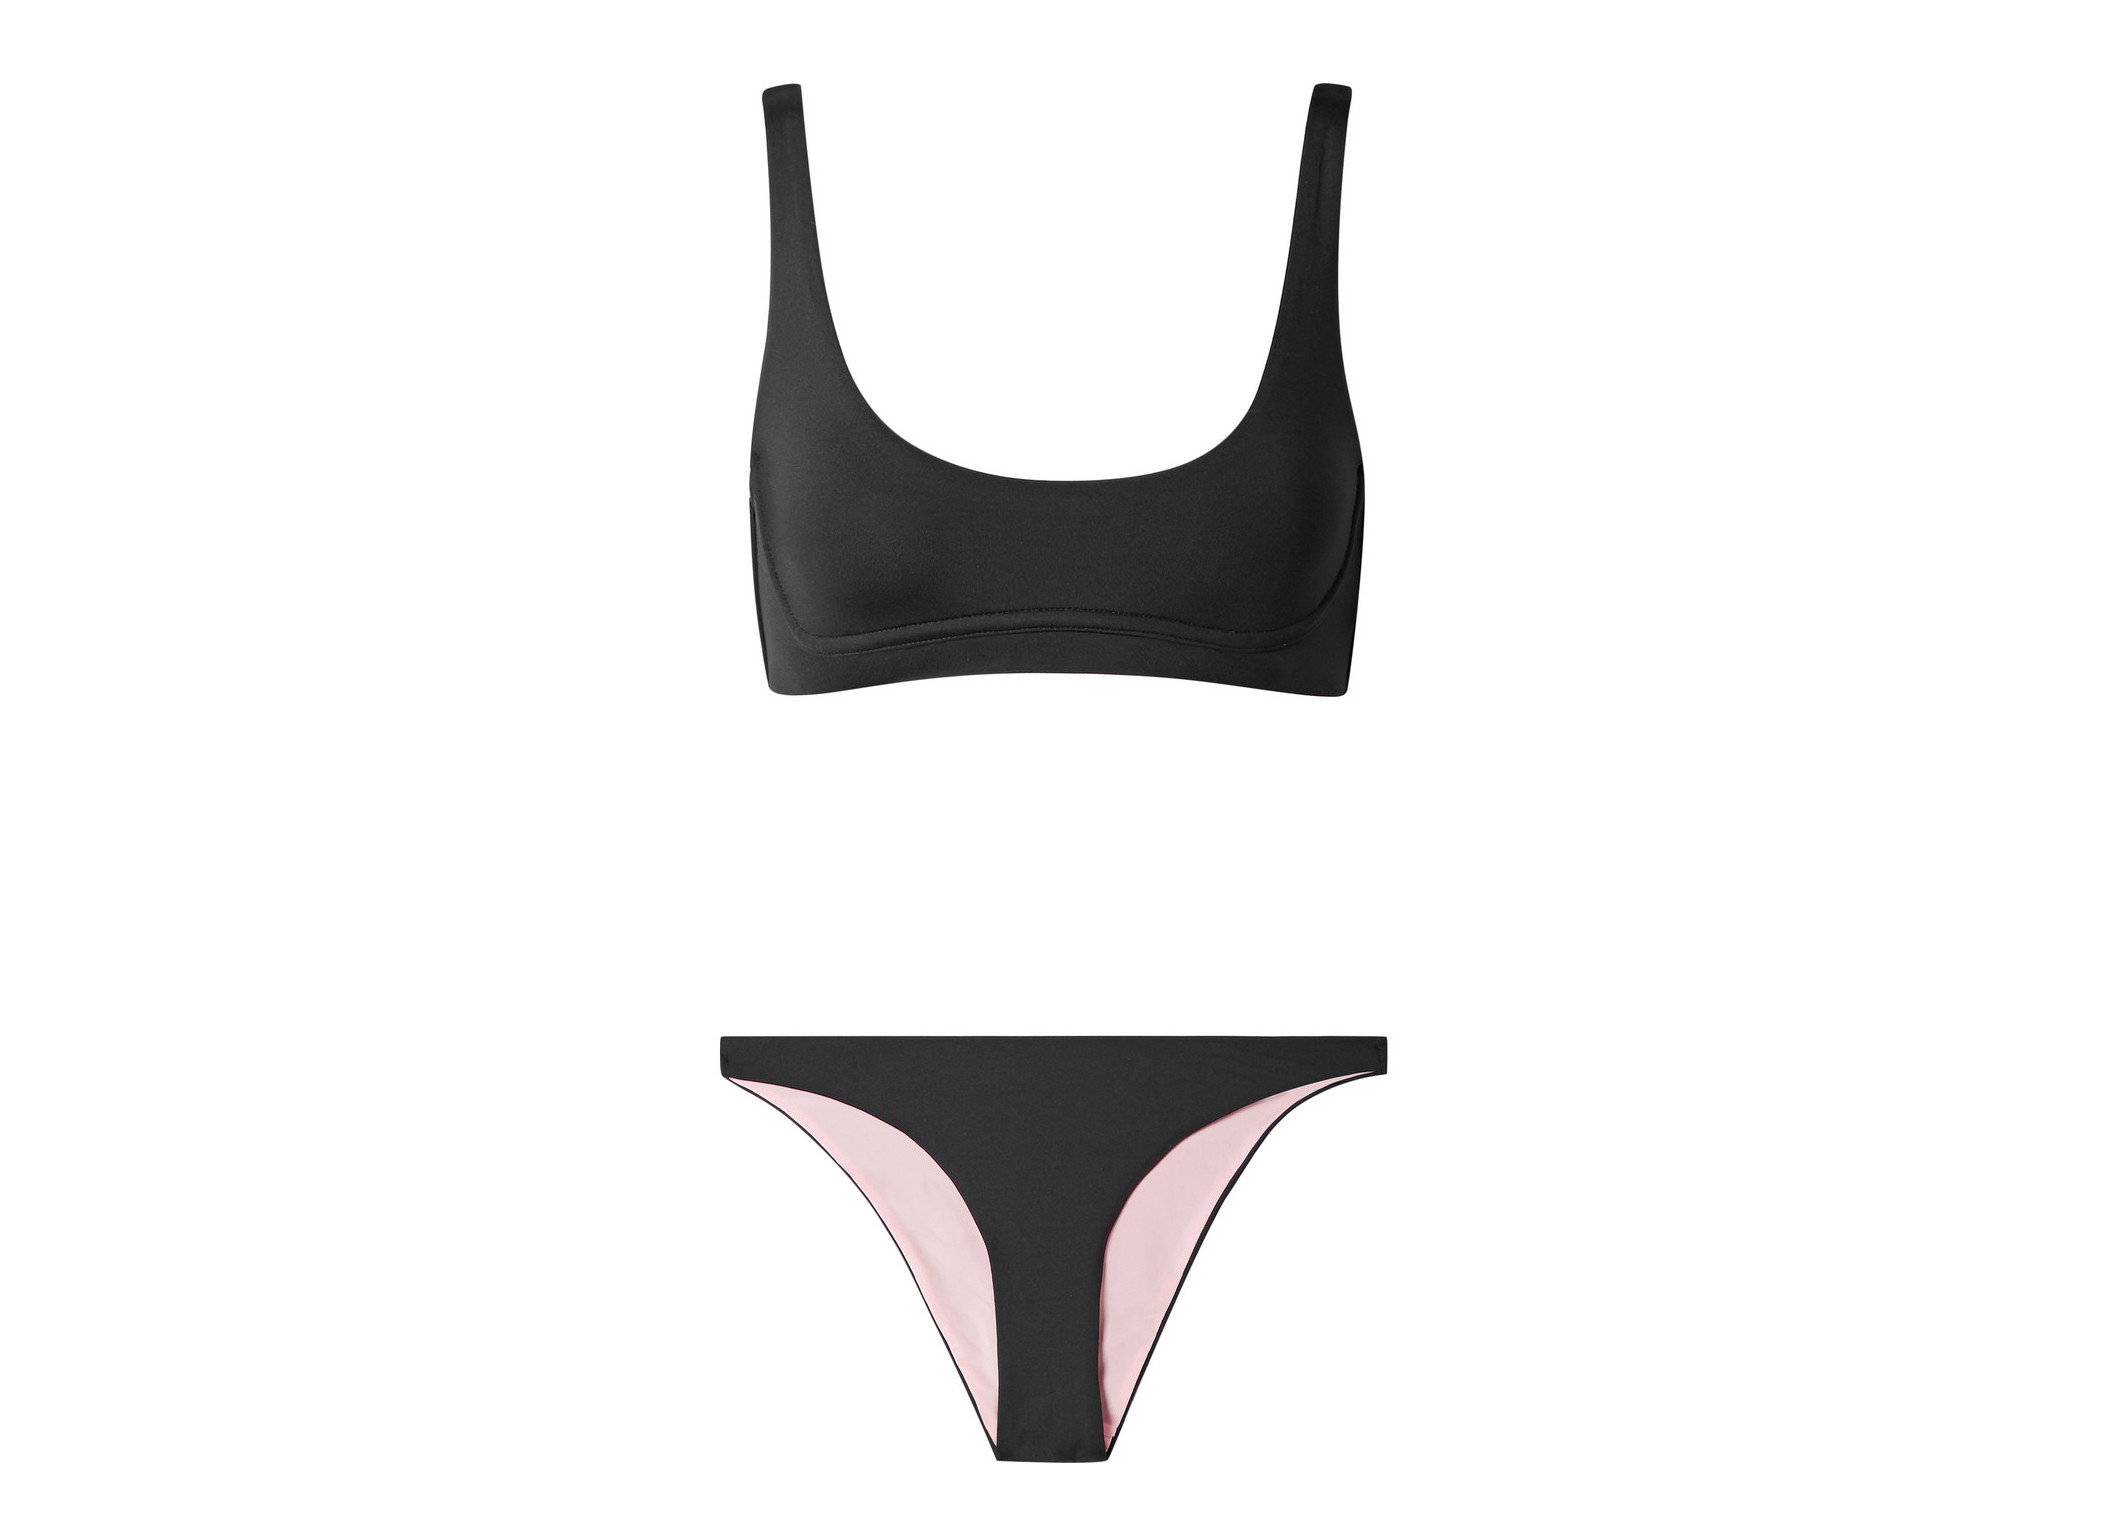 Style + Design Travel Shop black clothing undergarment active undergarment lingerie brassiere swimwear line product design underpants product swimsuit bottom sportswear font neck